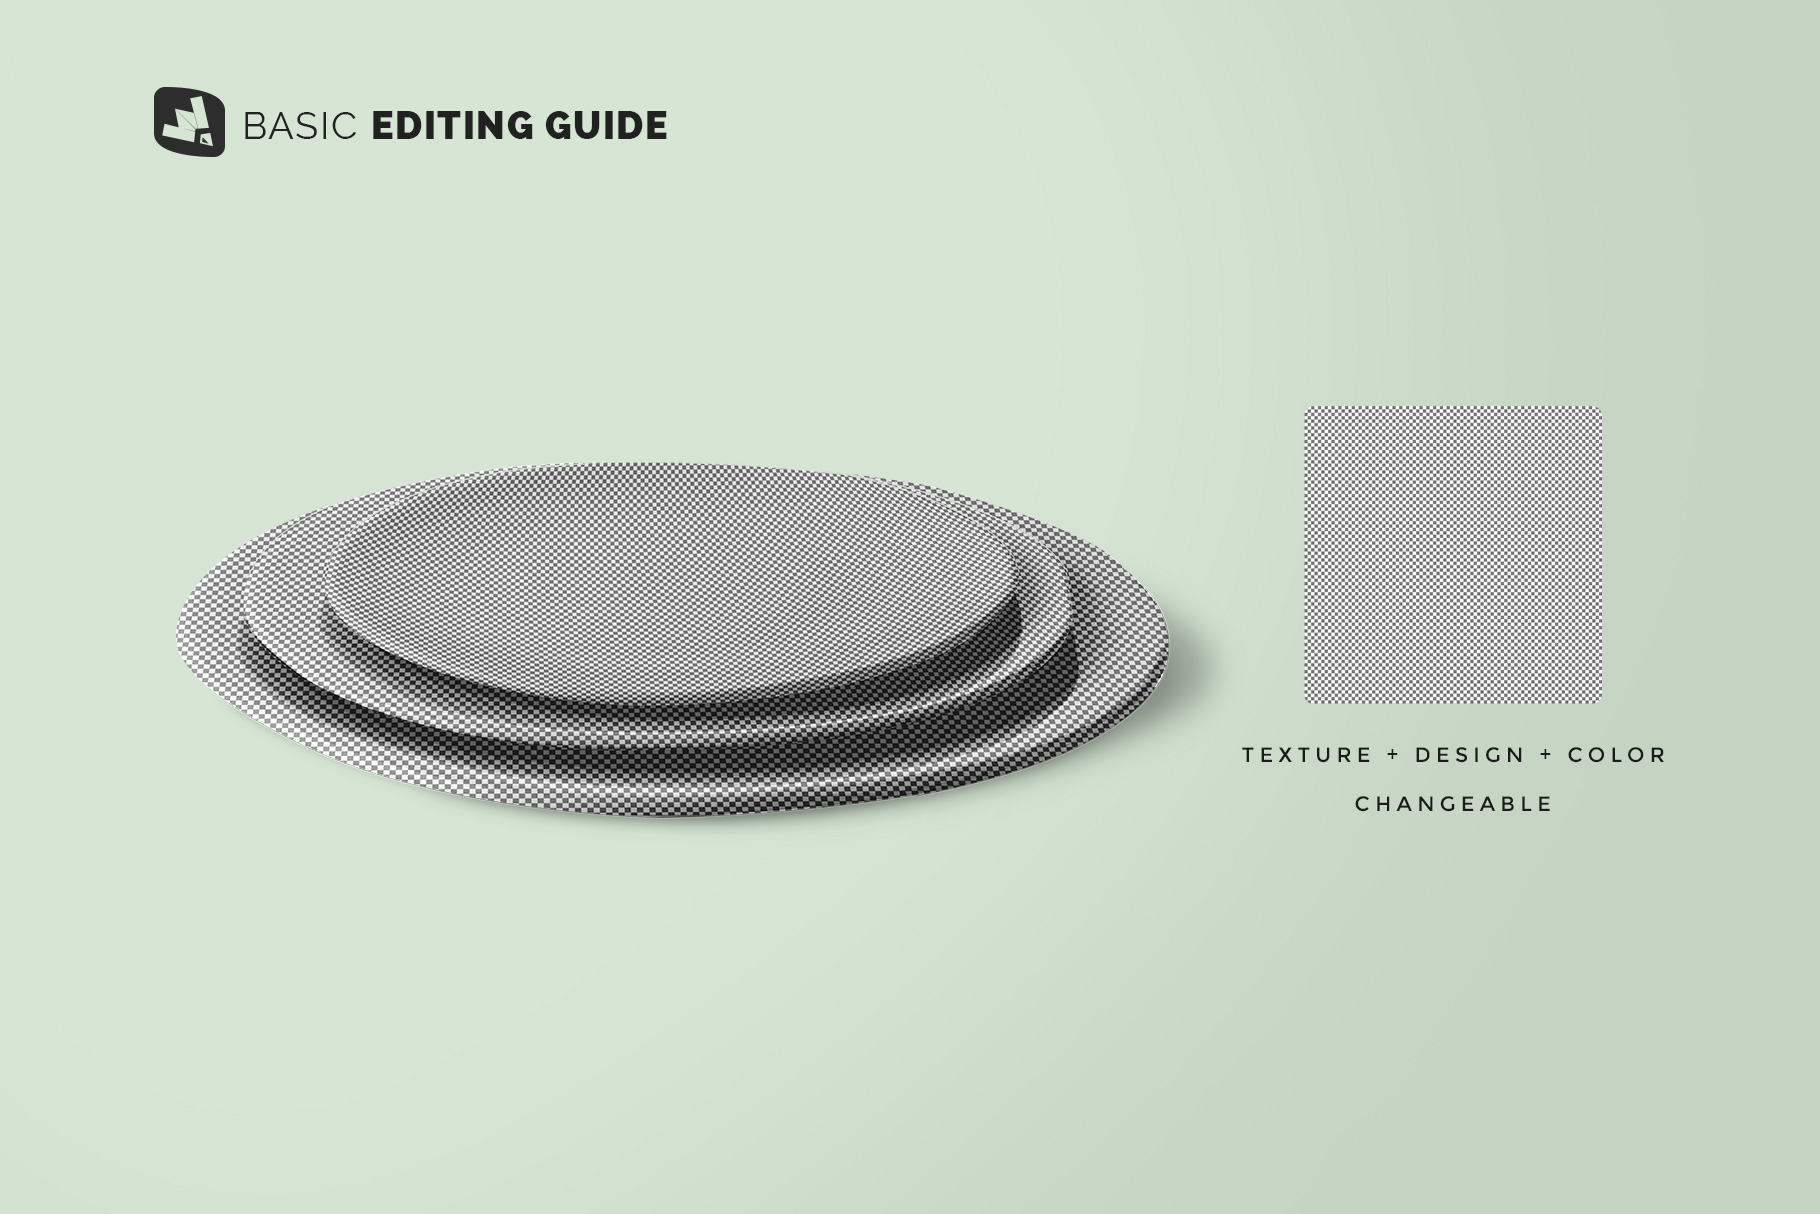 editability of the stacked ceramic plate mockup